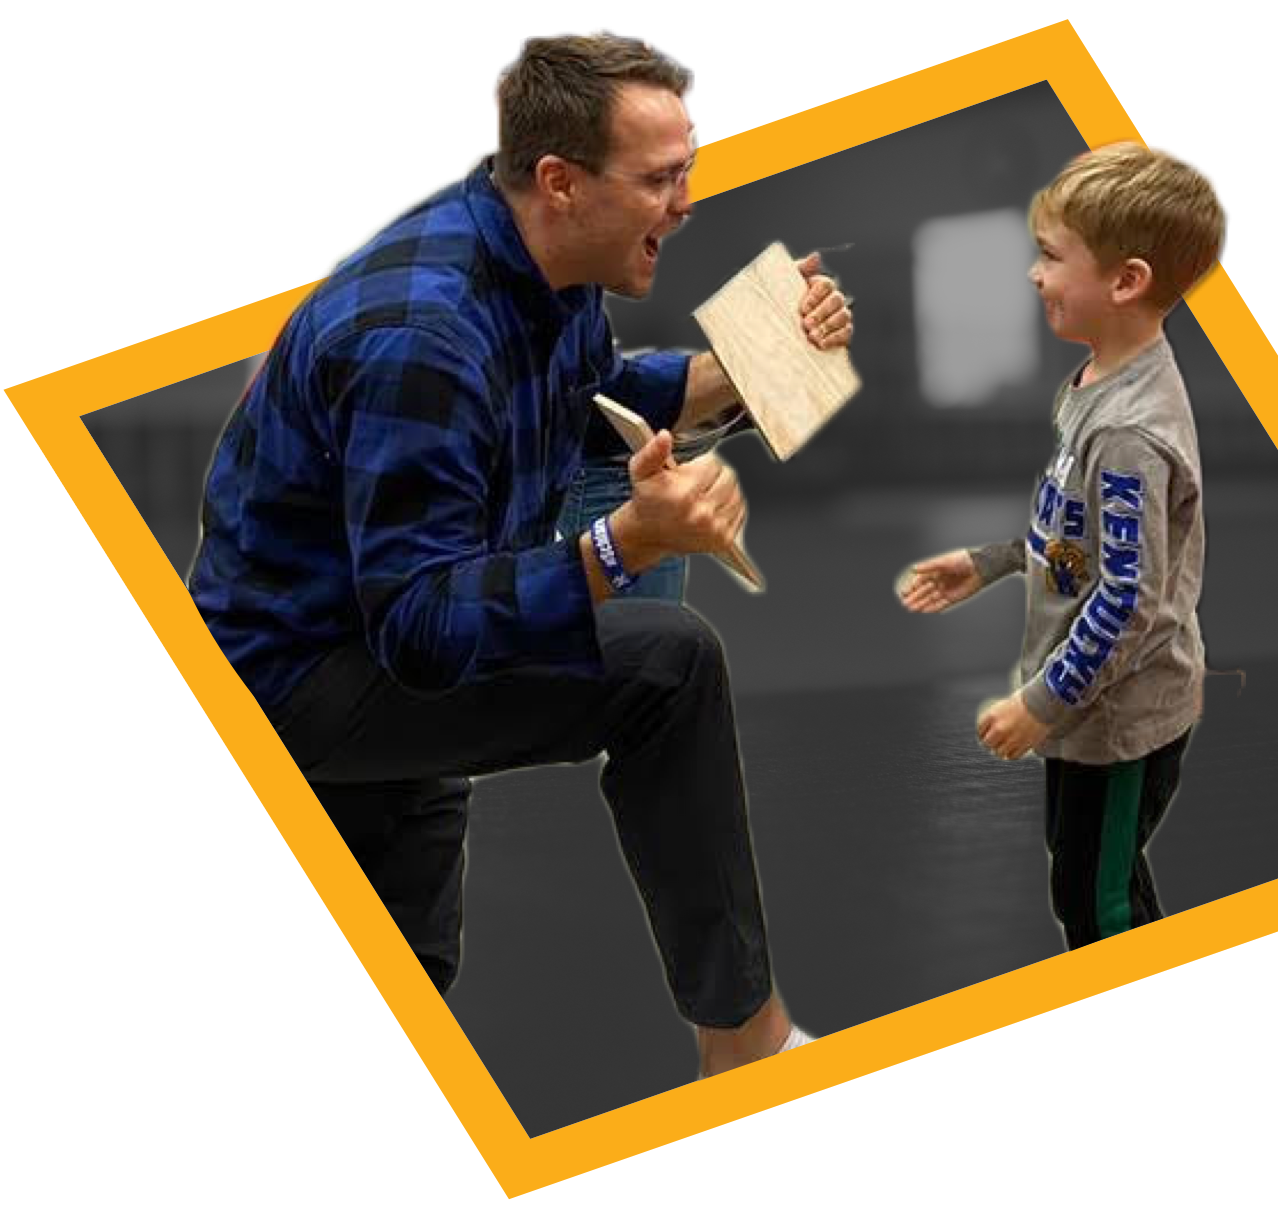 Father and Son celebrate as son breaks a board with a Karate Punch.